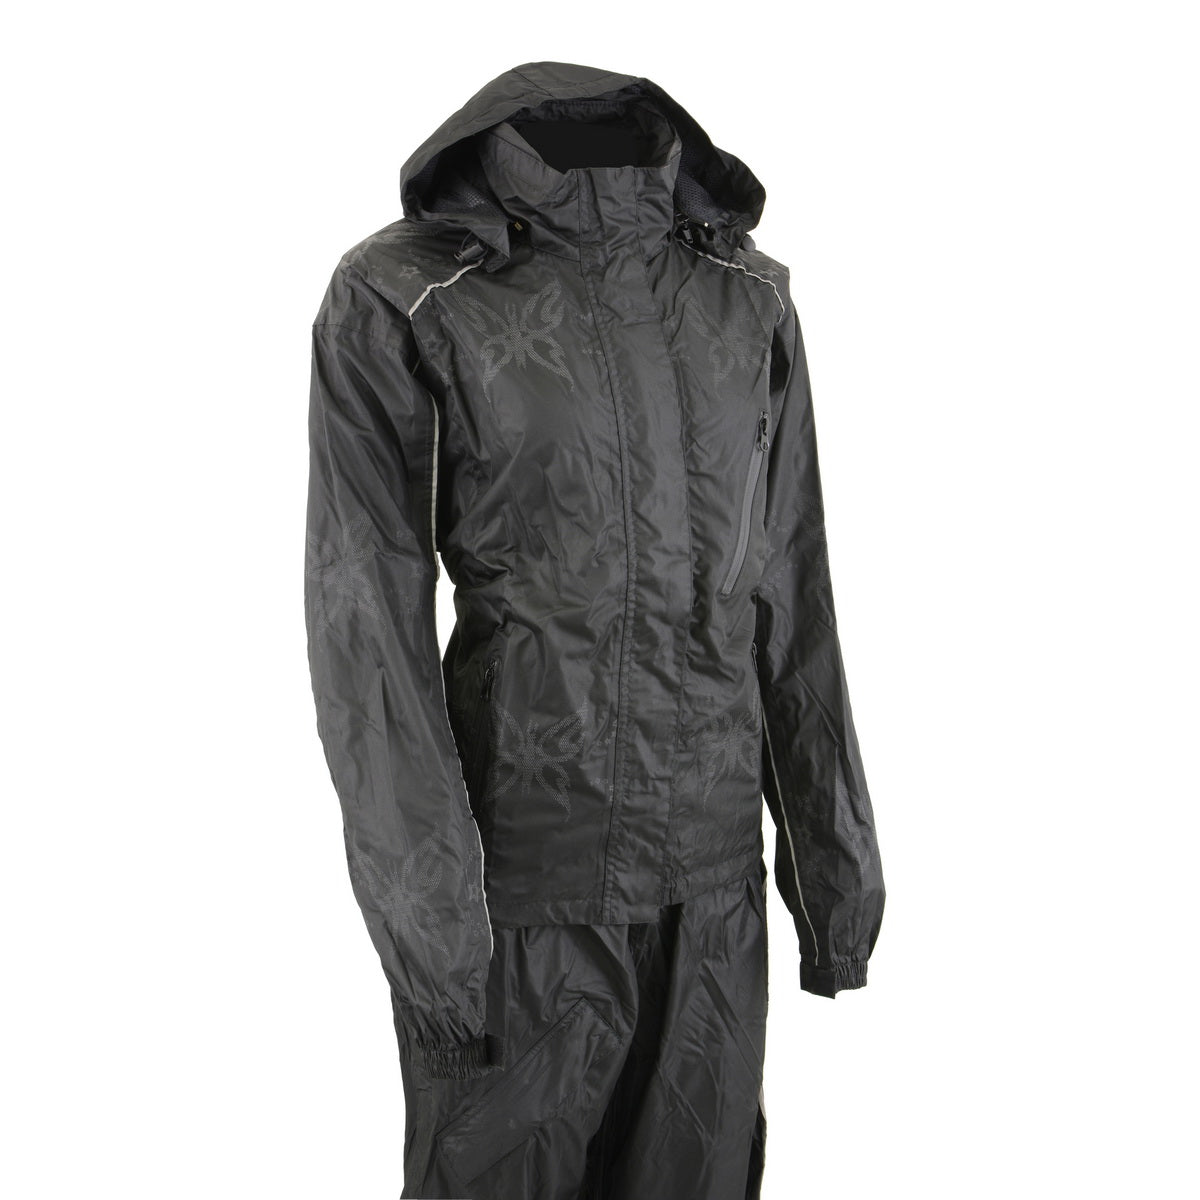 Milwaukee Performance SH2342 Women's Black Water Resistant Rain Suit